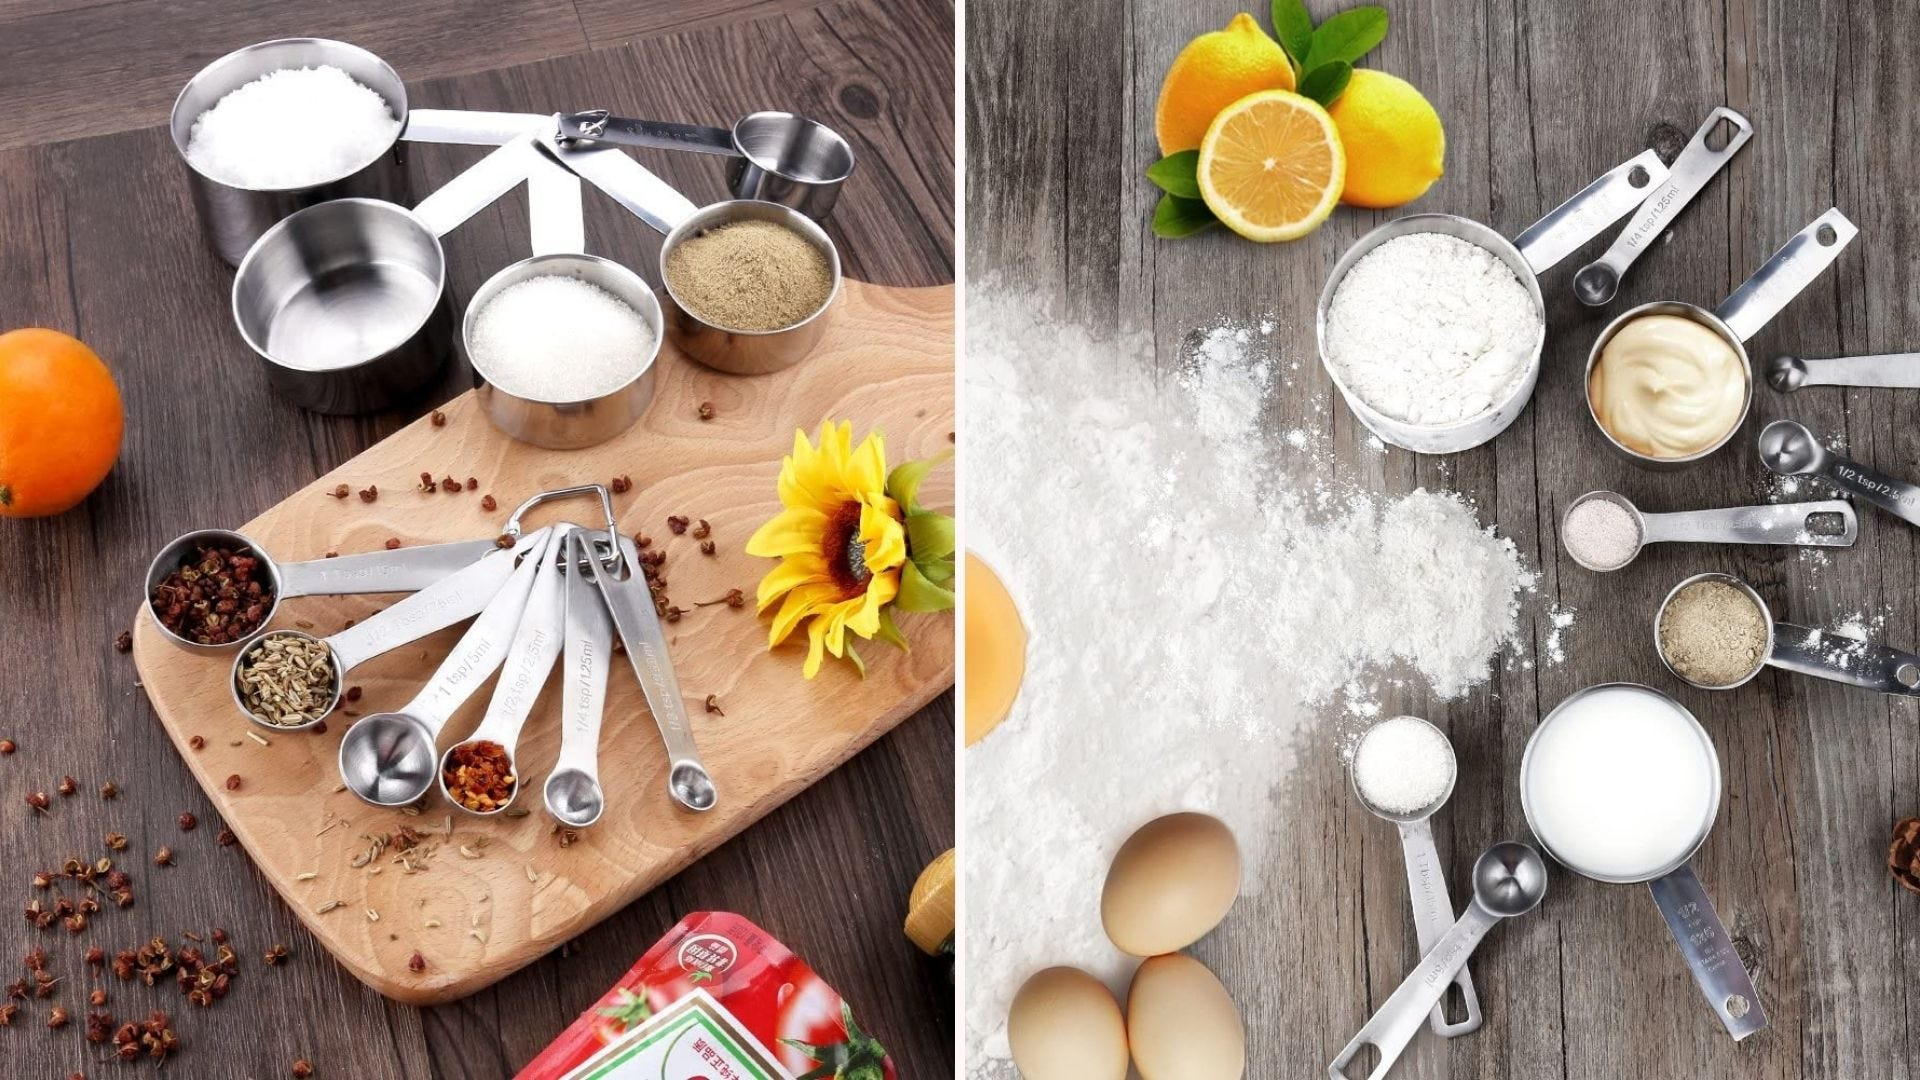 Stainless steel measuring cups and spoons spread out on the counter with different ingredients